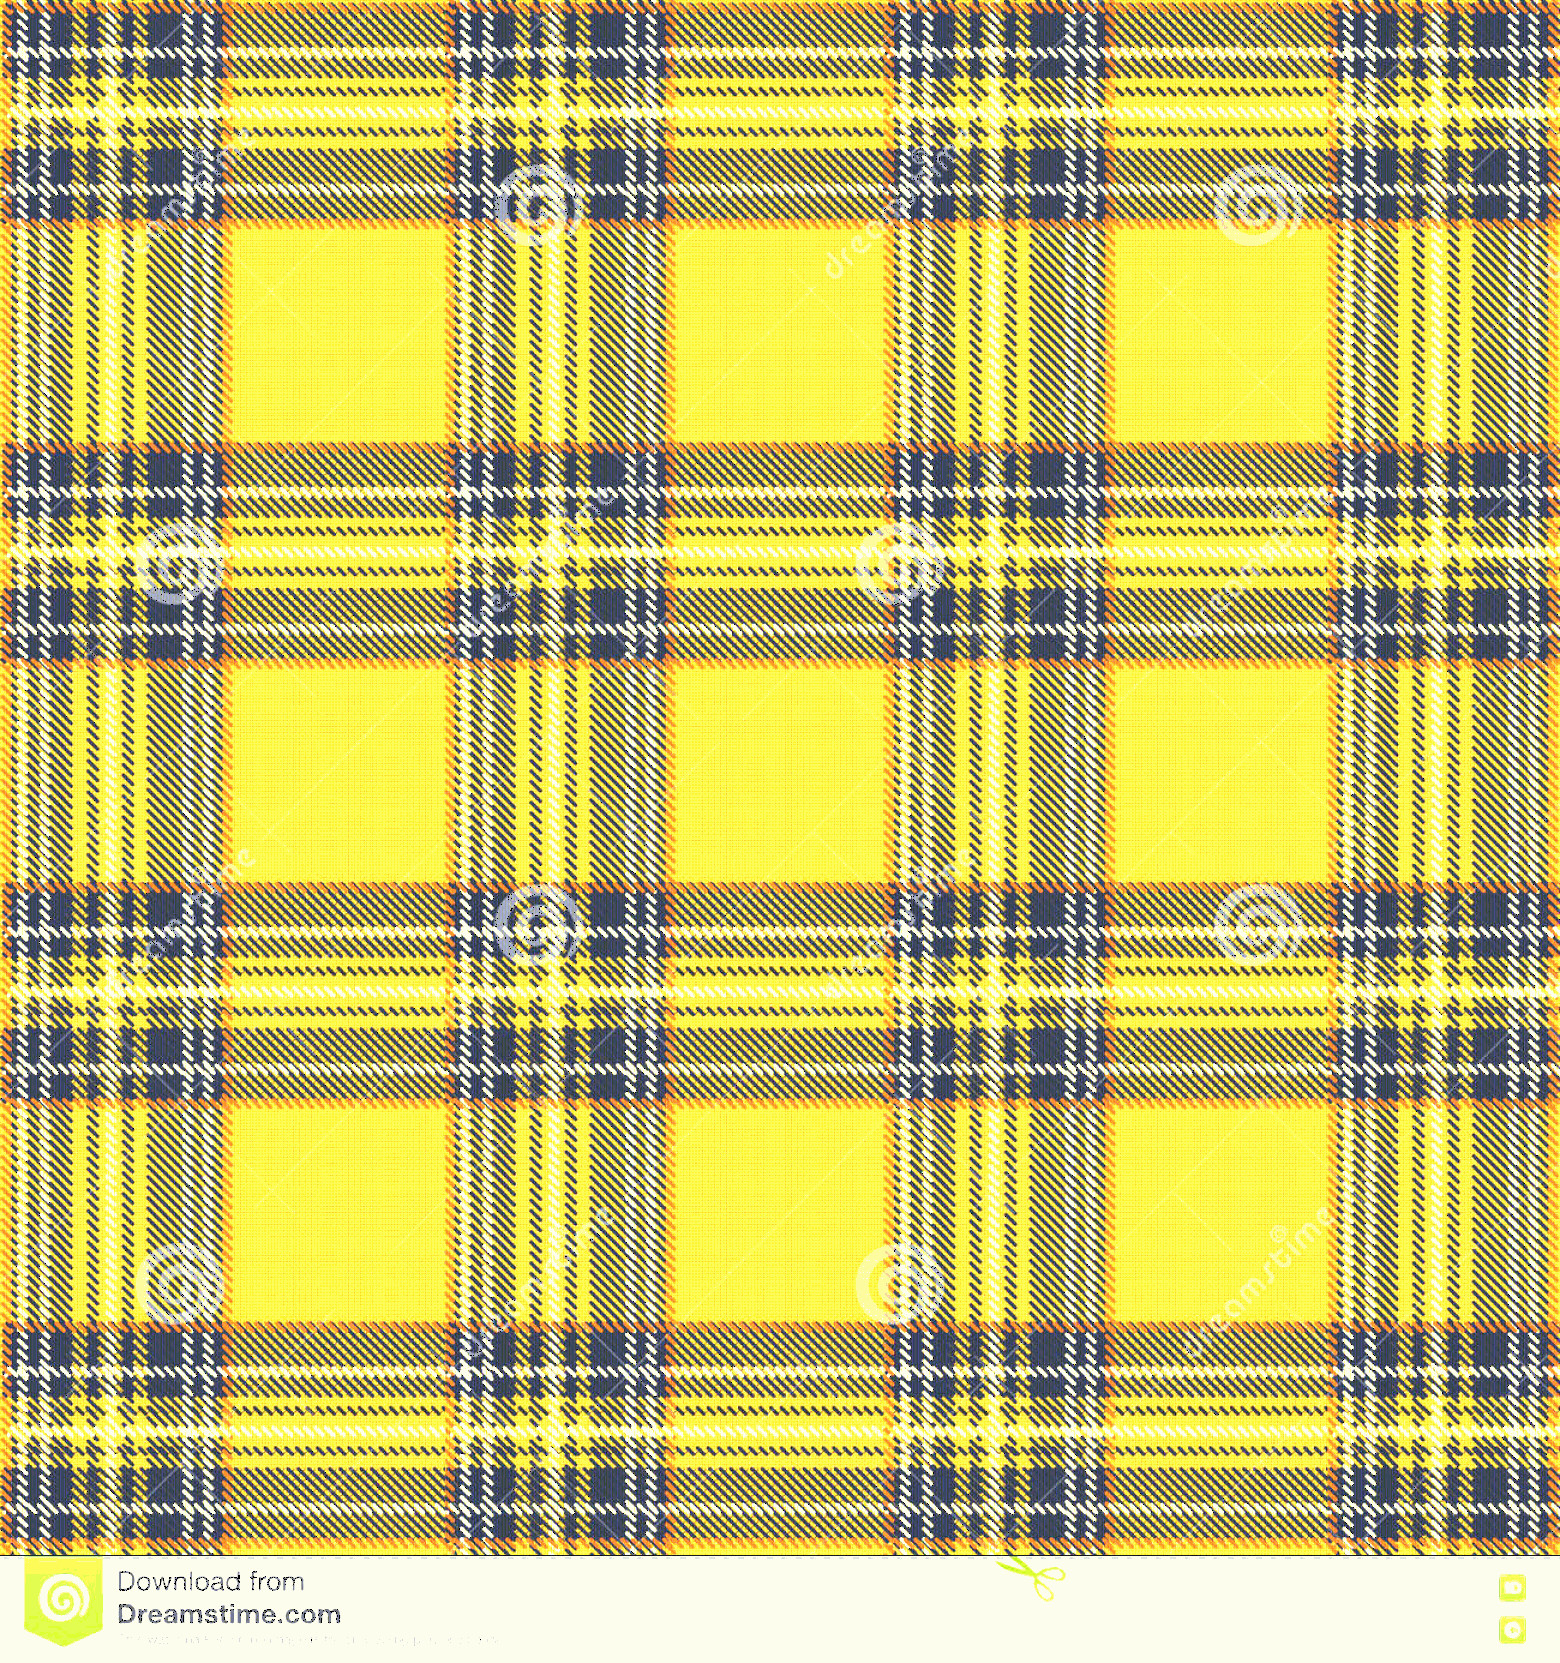 Plaid Vector: Stock Illustration Tartan Plaid Vector Pattern Background Fabric Texture Eps Image